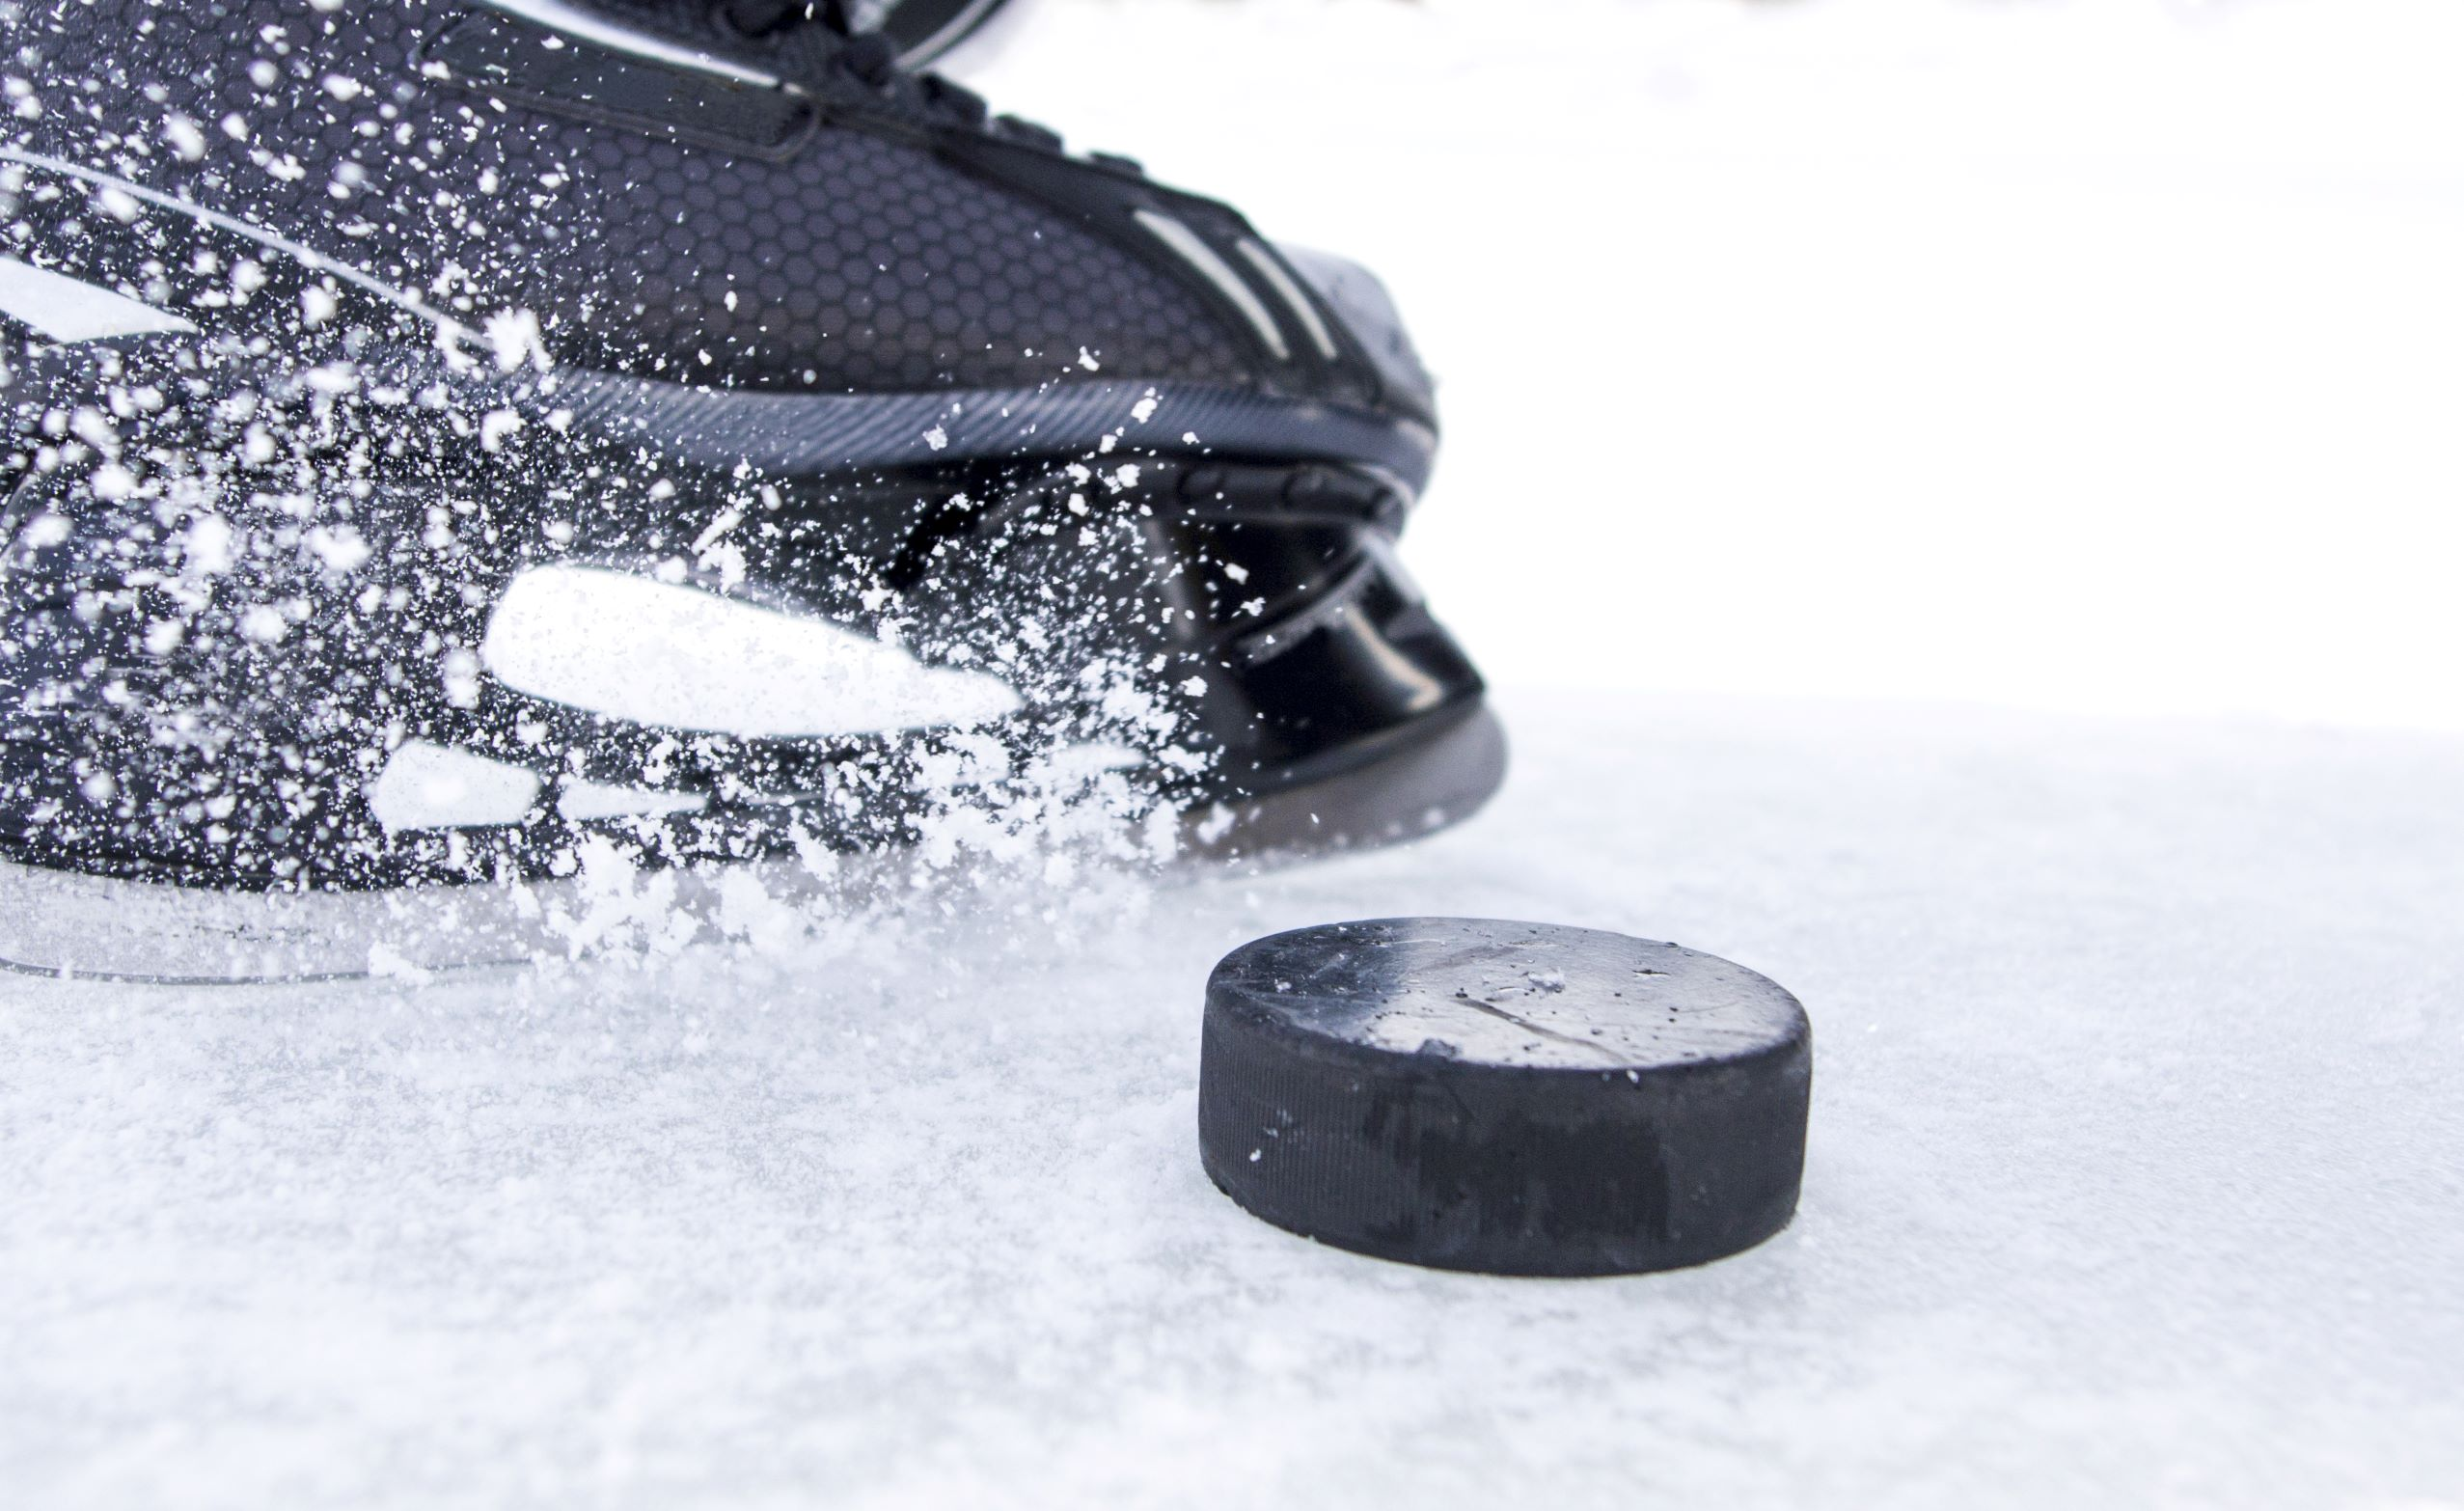 Where's The Puck Going?